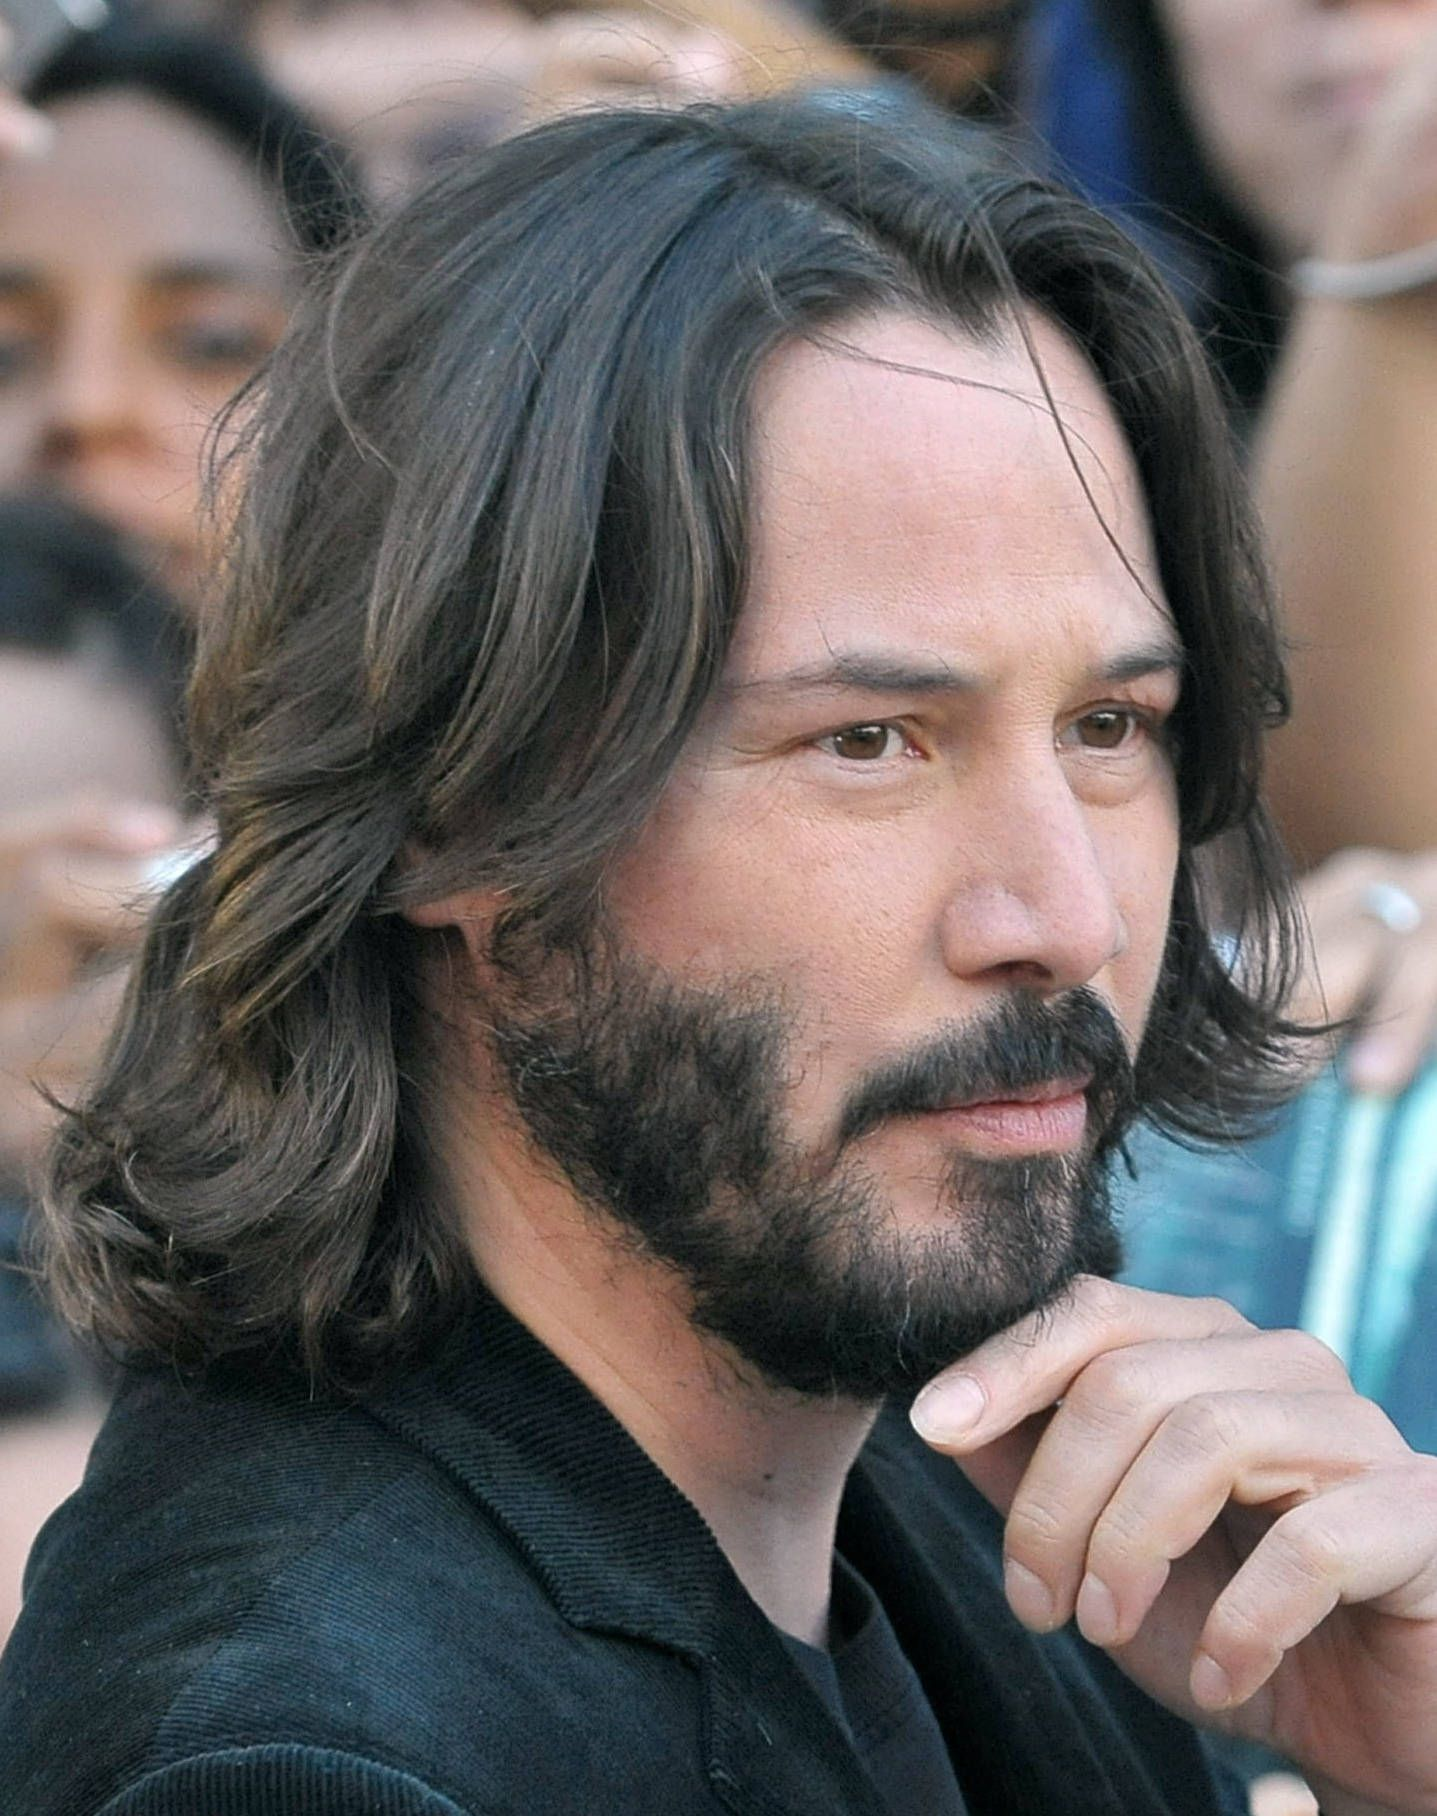 If You Want To Grow Your Hair Out Follow The Example Of These Leading Men Older Mens Hairstyles Men S Long Hairstyles Long Hair Styles Men